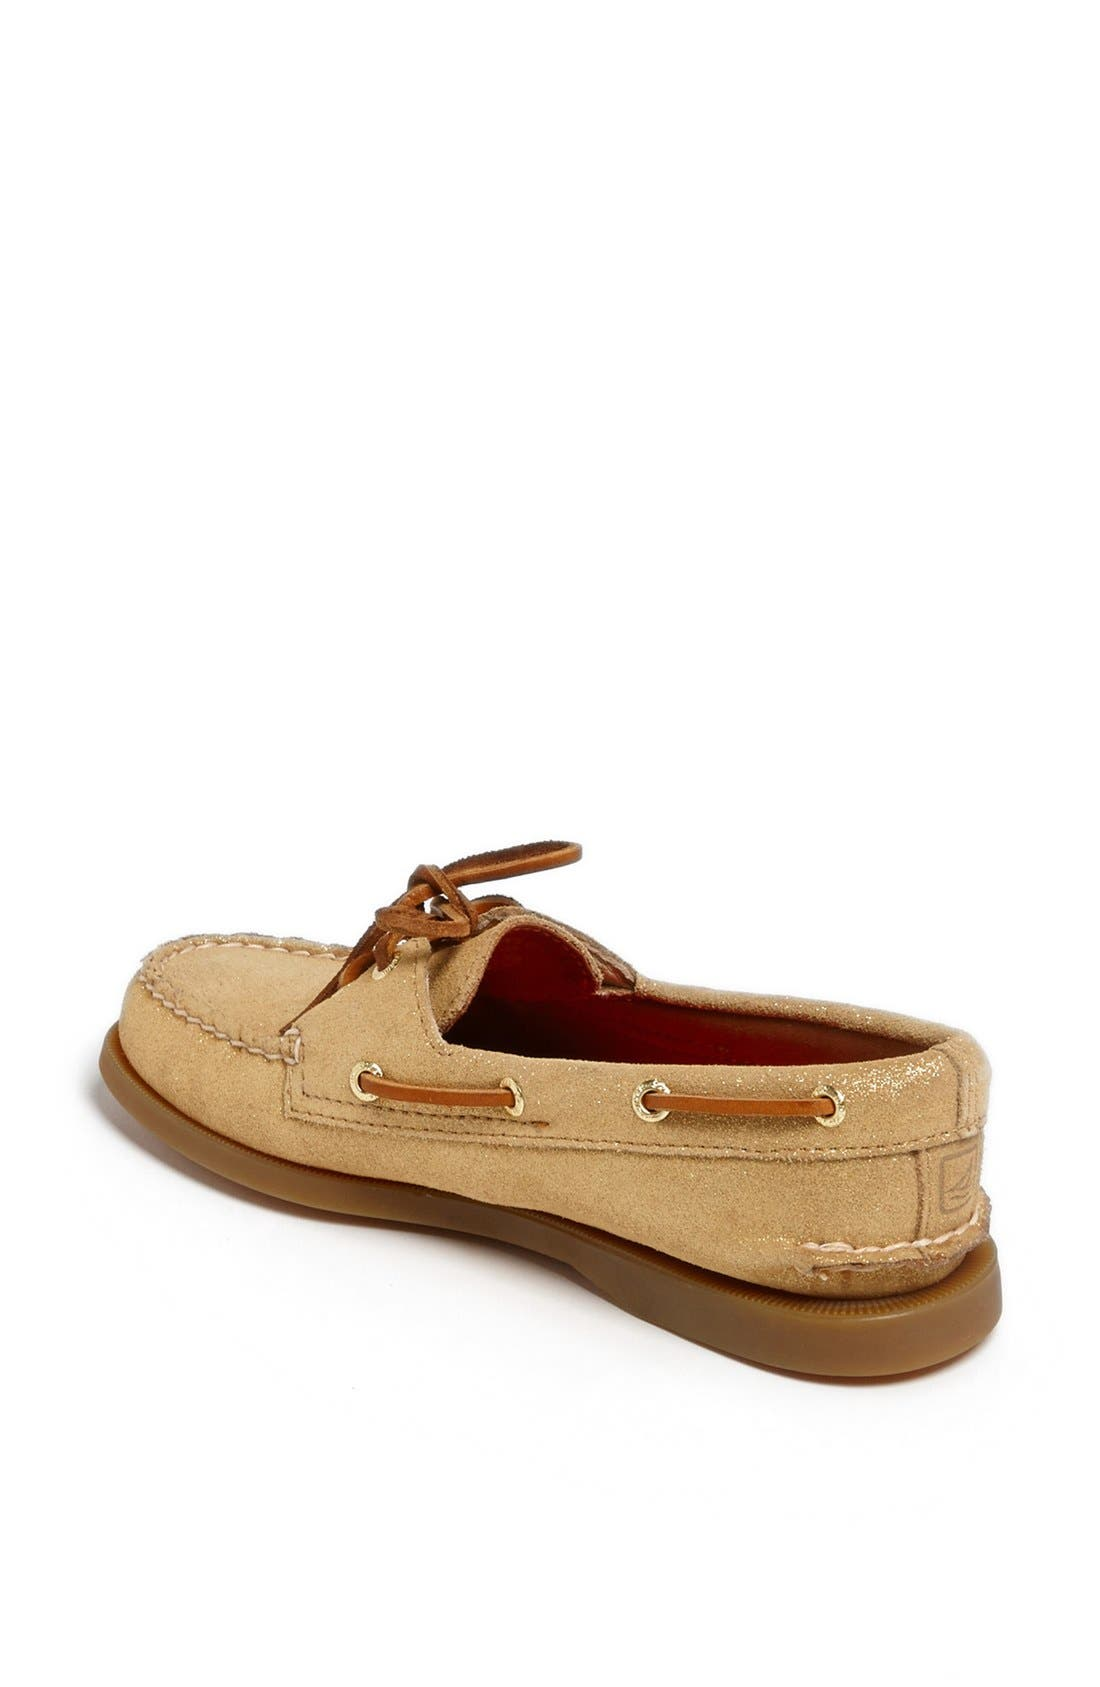 Alternate Image 2  - Sperry 'Authentic Original' Boat Shoe (Women)